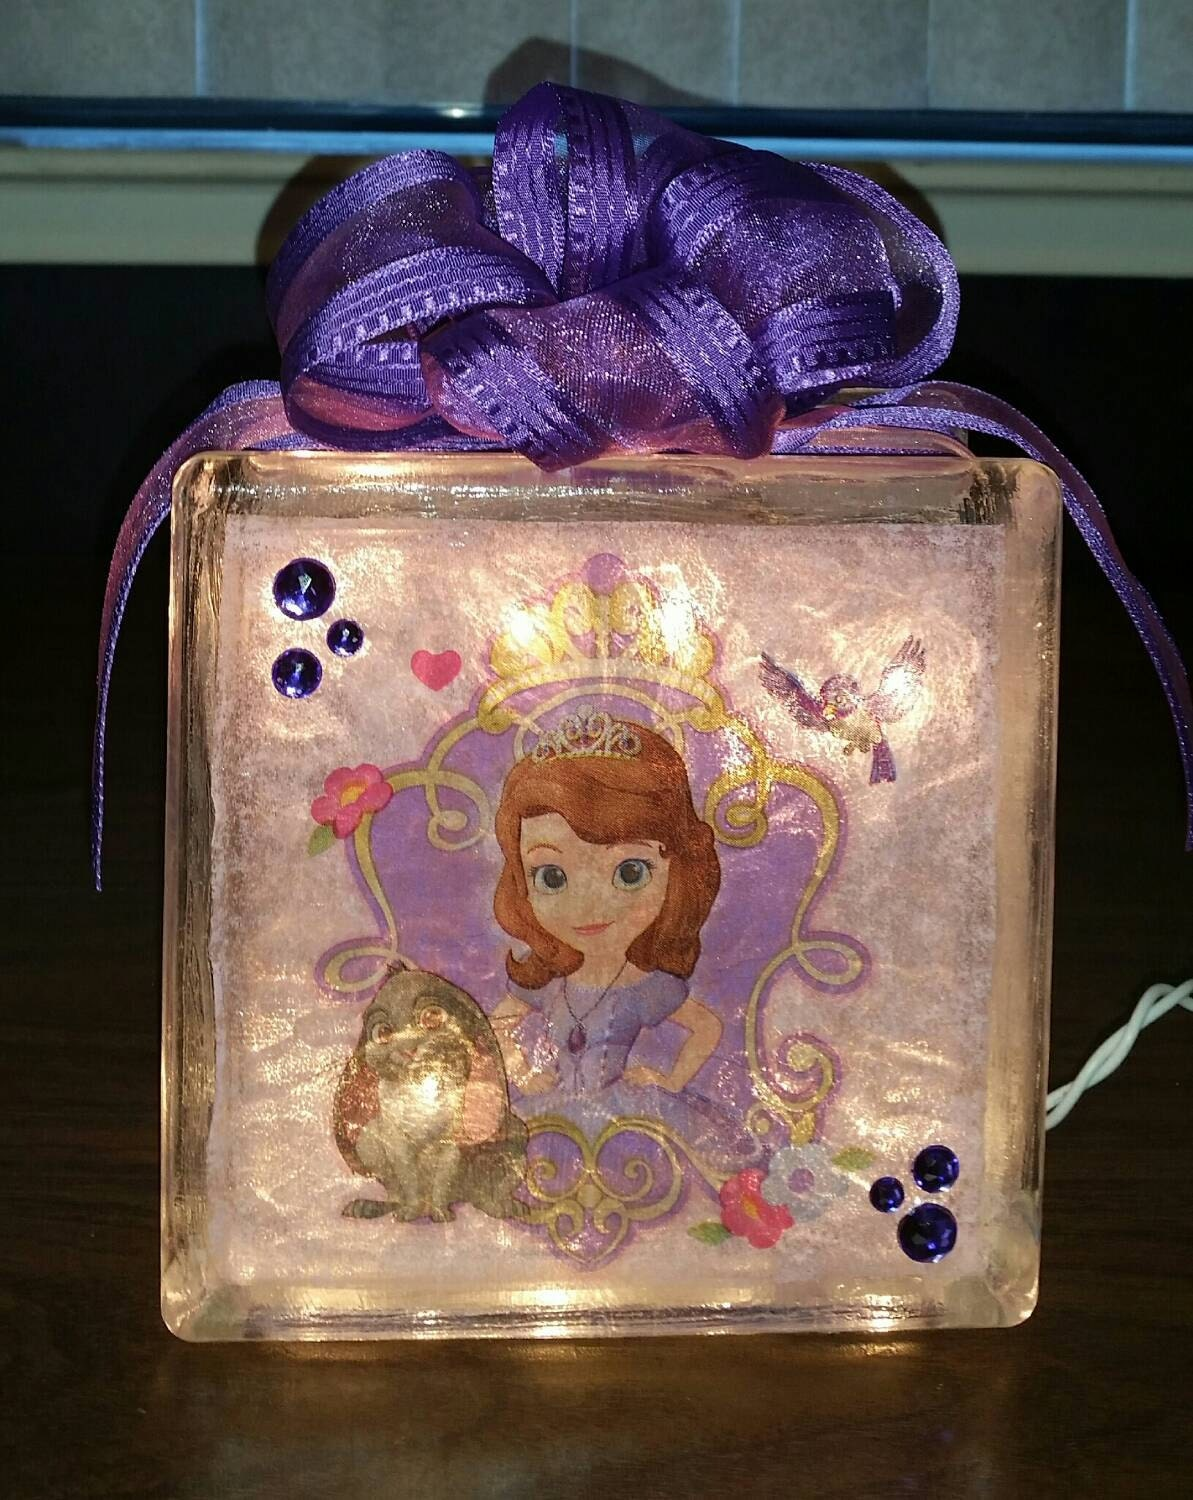 Princess Sofia The First Nightlight Lighted Glass Block And